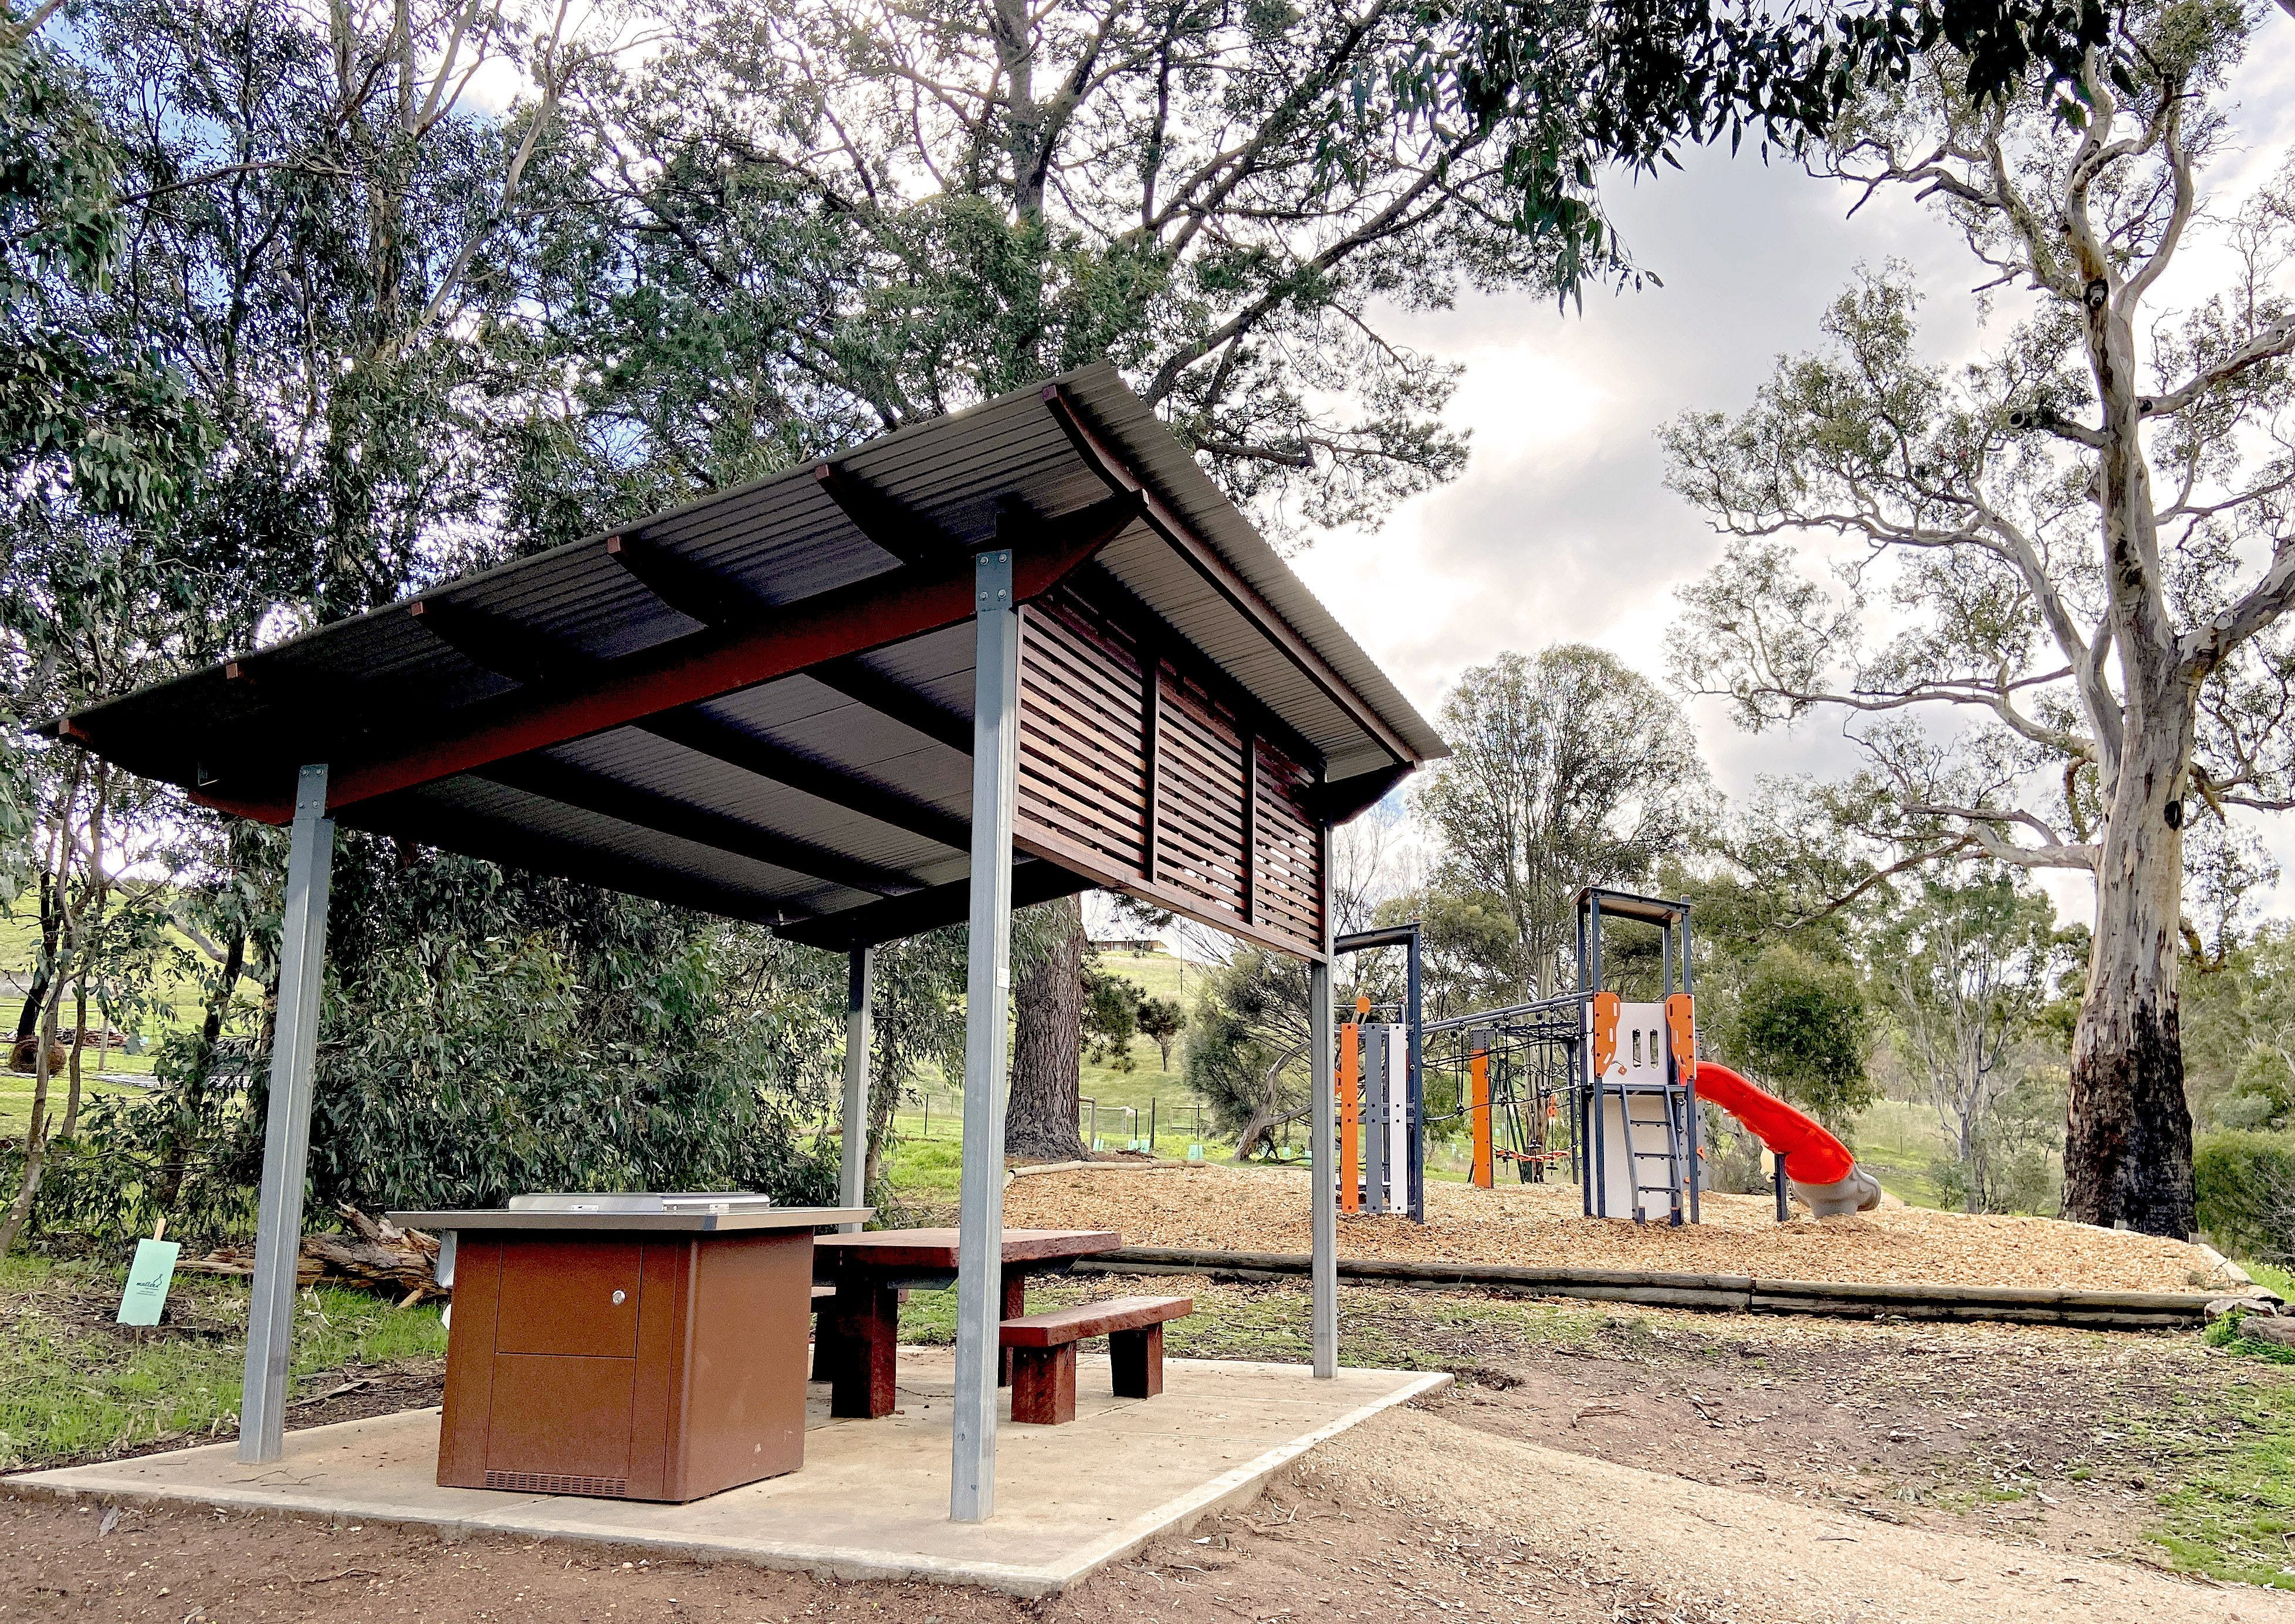 Harrogate Reserve - barbecue, shelter and playground